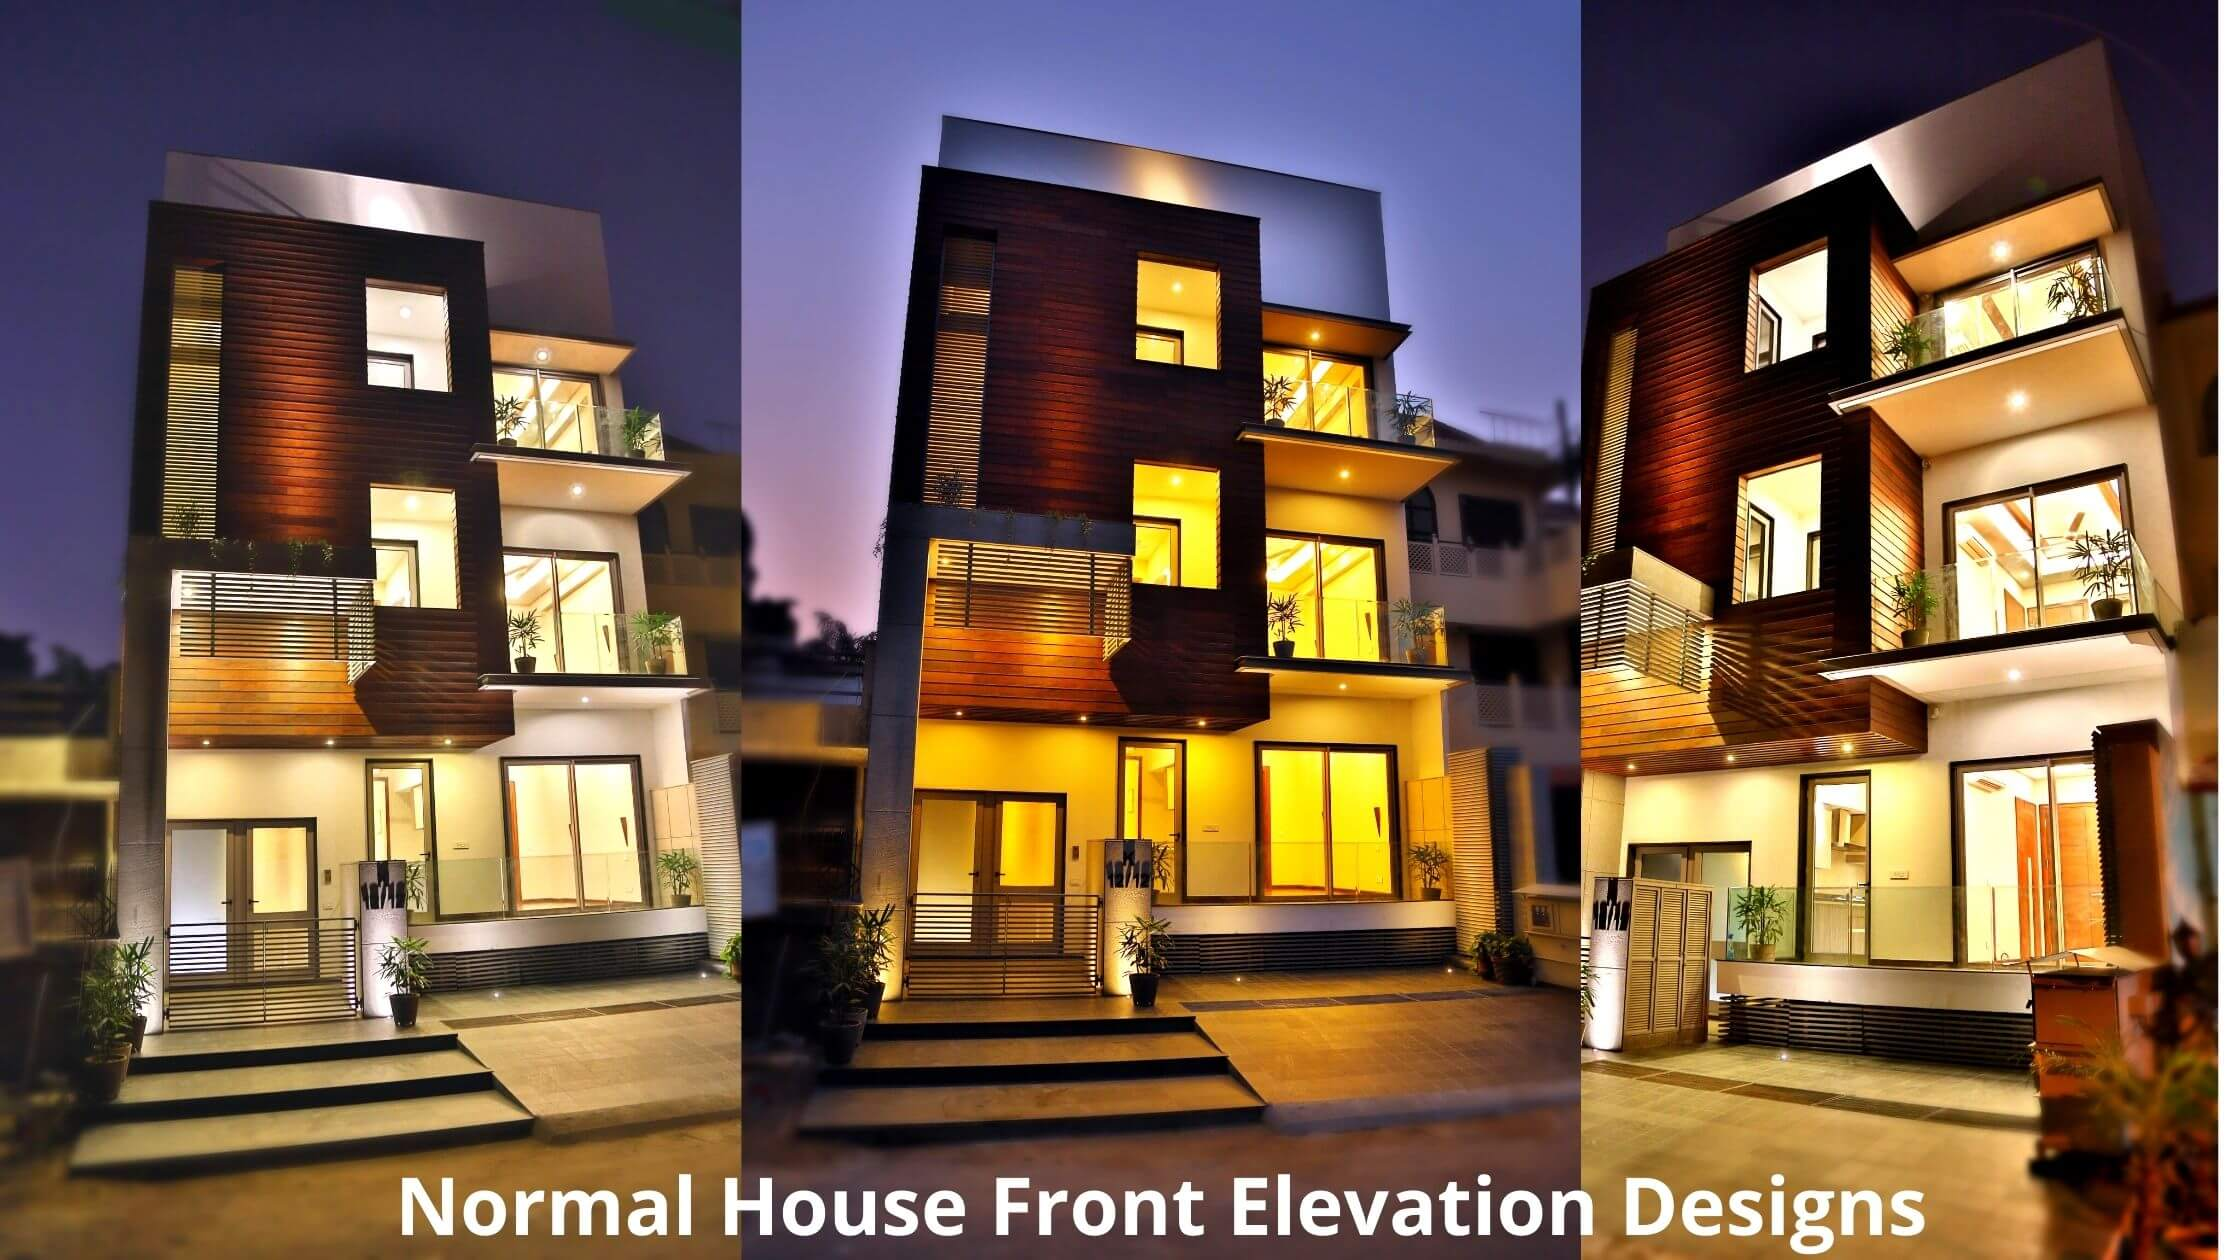 Normal House Front Elevation Designs in Budget